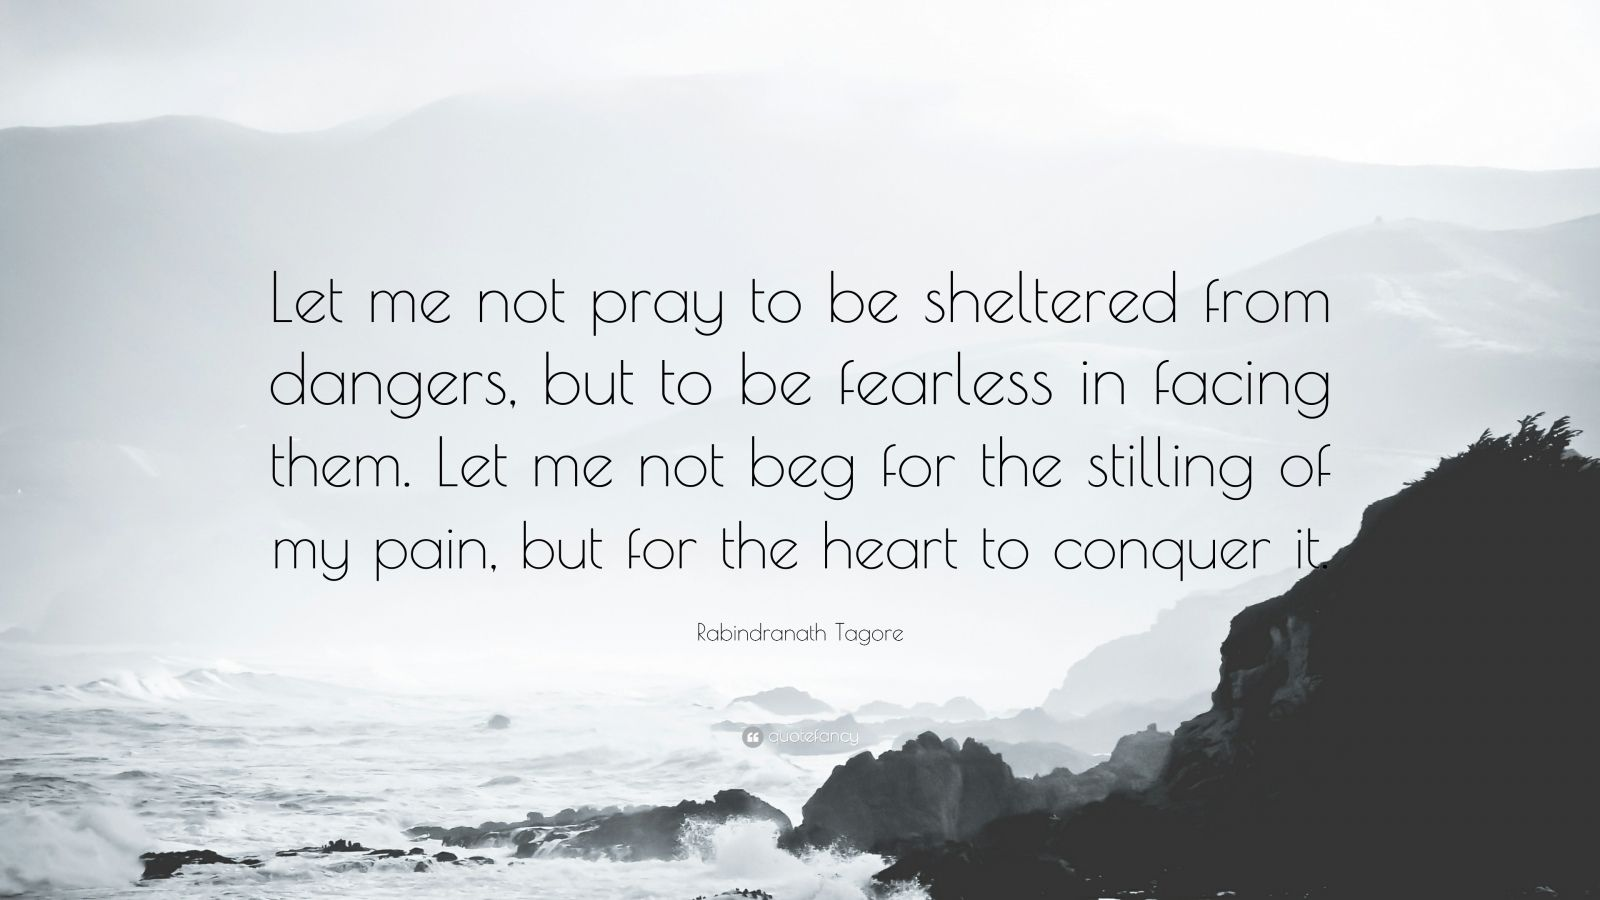 """Rabindranath Tagore Quote: """"Let me not pray to be sheltered from dangers, but to be fearless in facing them. Let me not beg for the stilling of my pain, but for the heart to conquer it."""""""